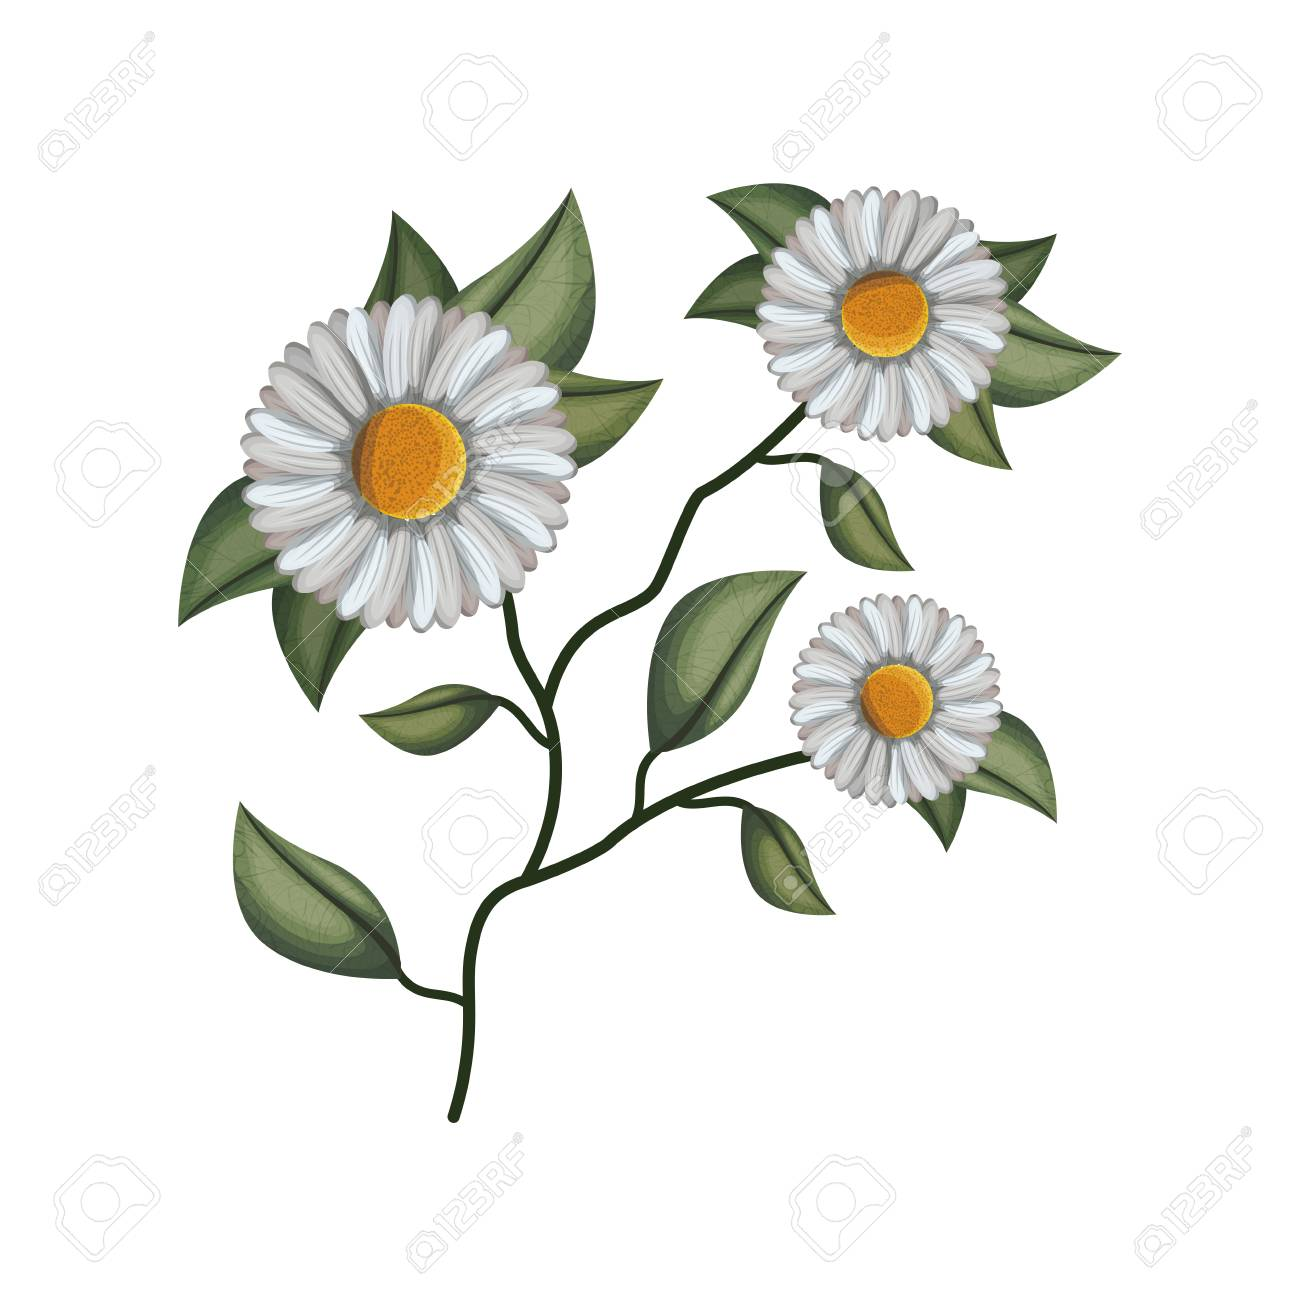 Cute Daisy Flower With Leafs Decorative Vector Illustration Design